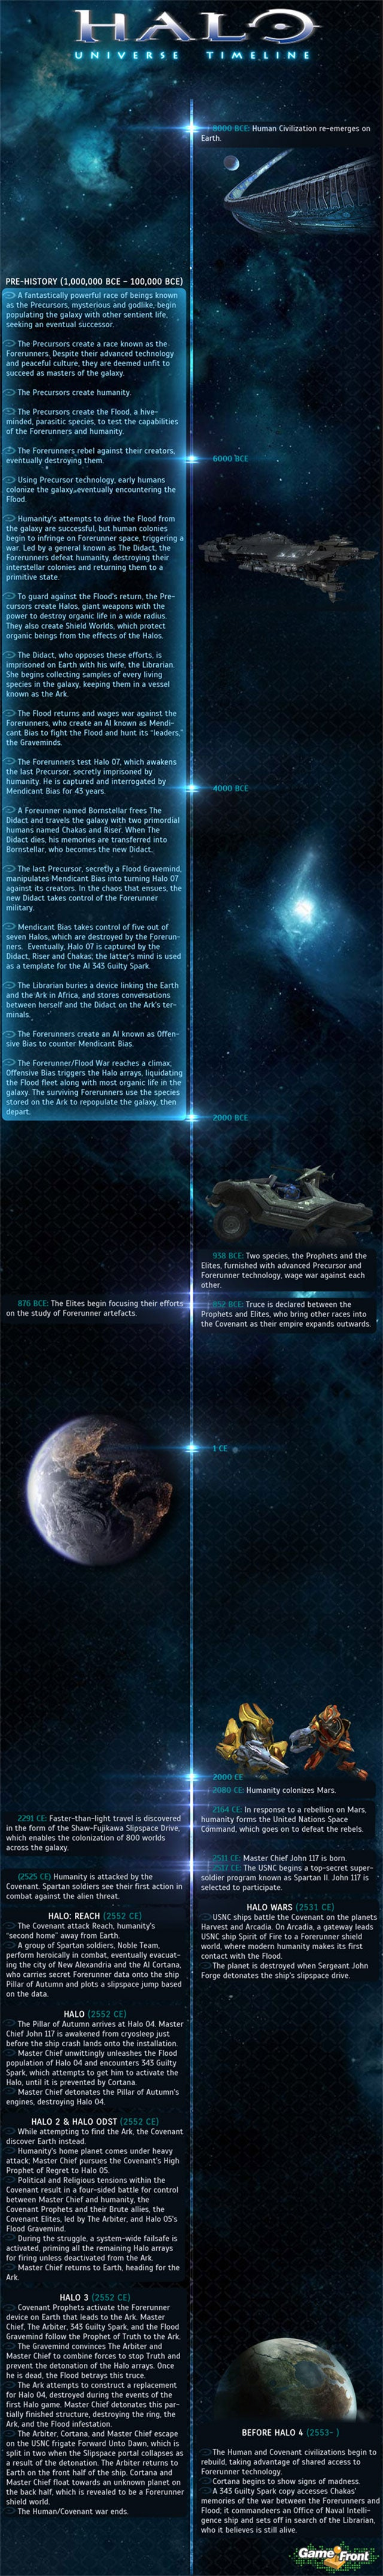 Halo's Story Got You Confused? This Chart Might Help. [Update]